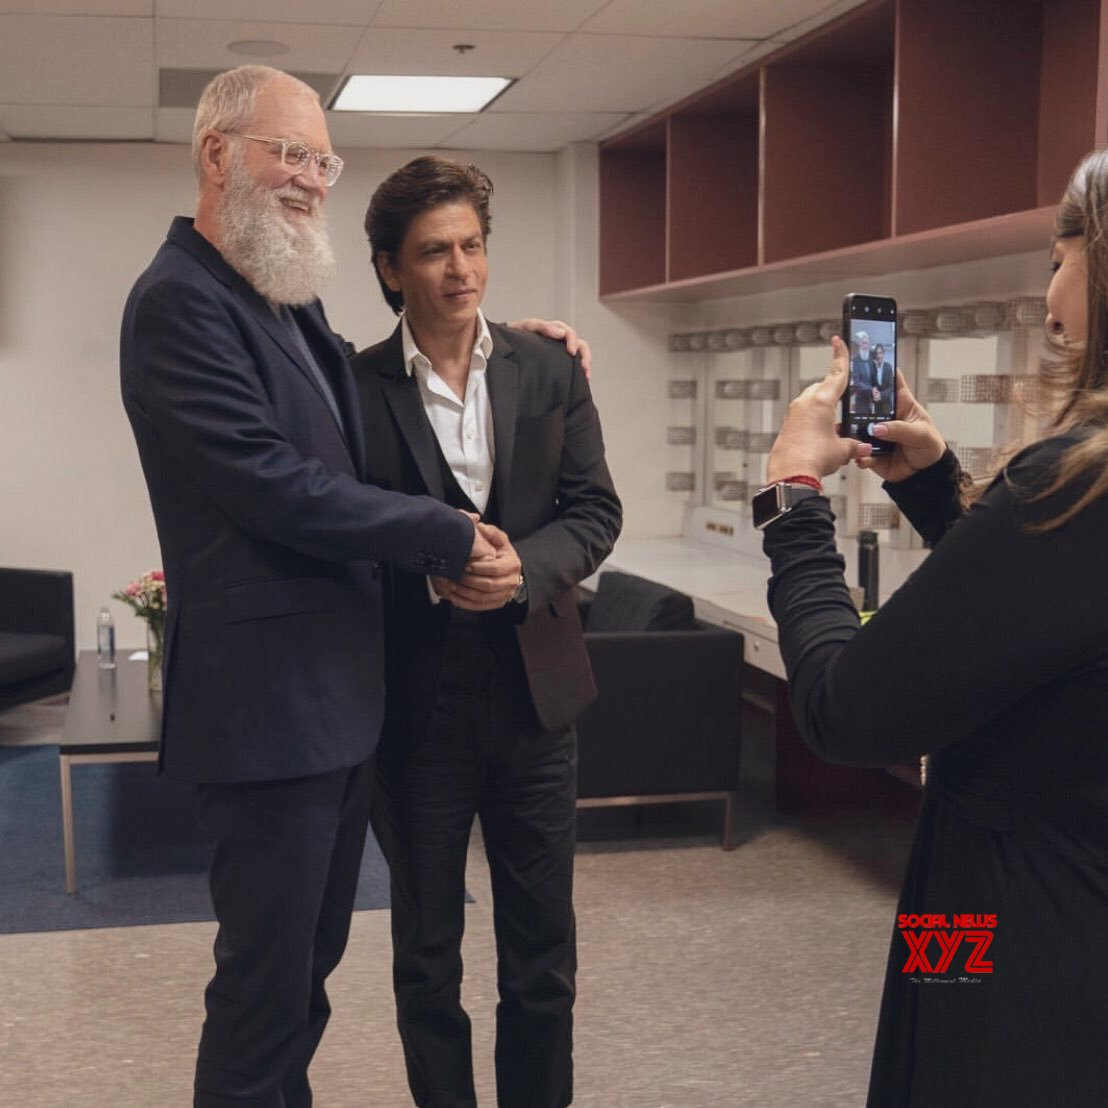 David Letterman And Shah Rukh Khan Stills From Their Interview